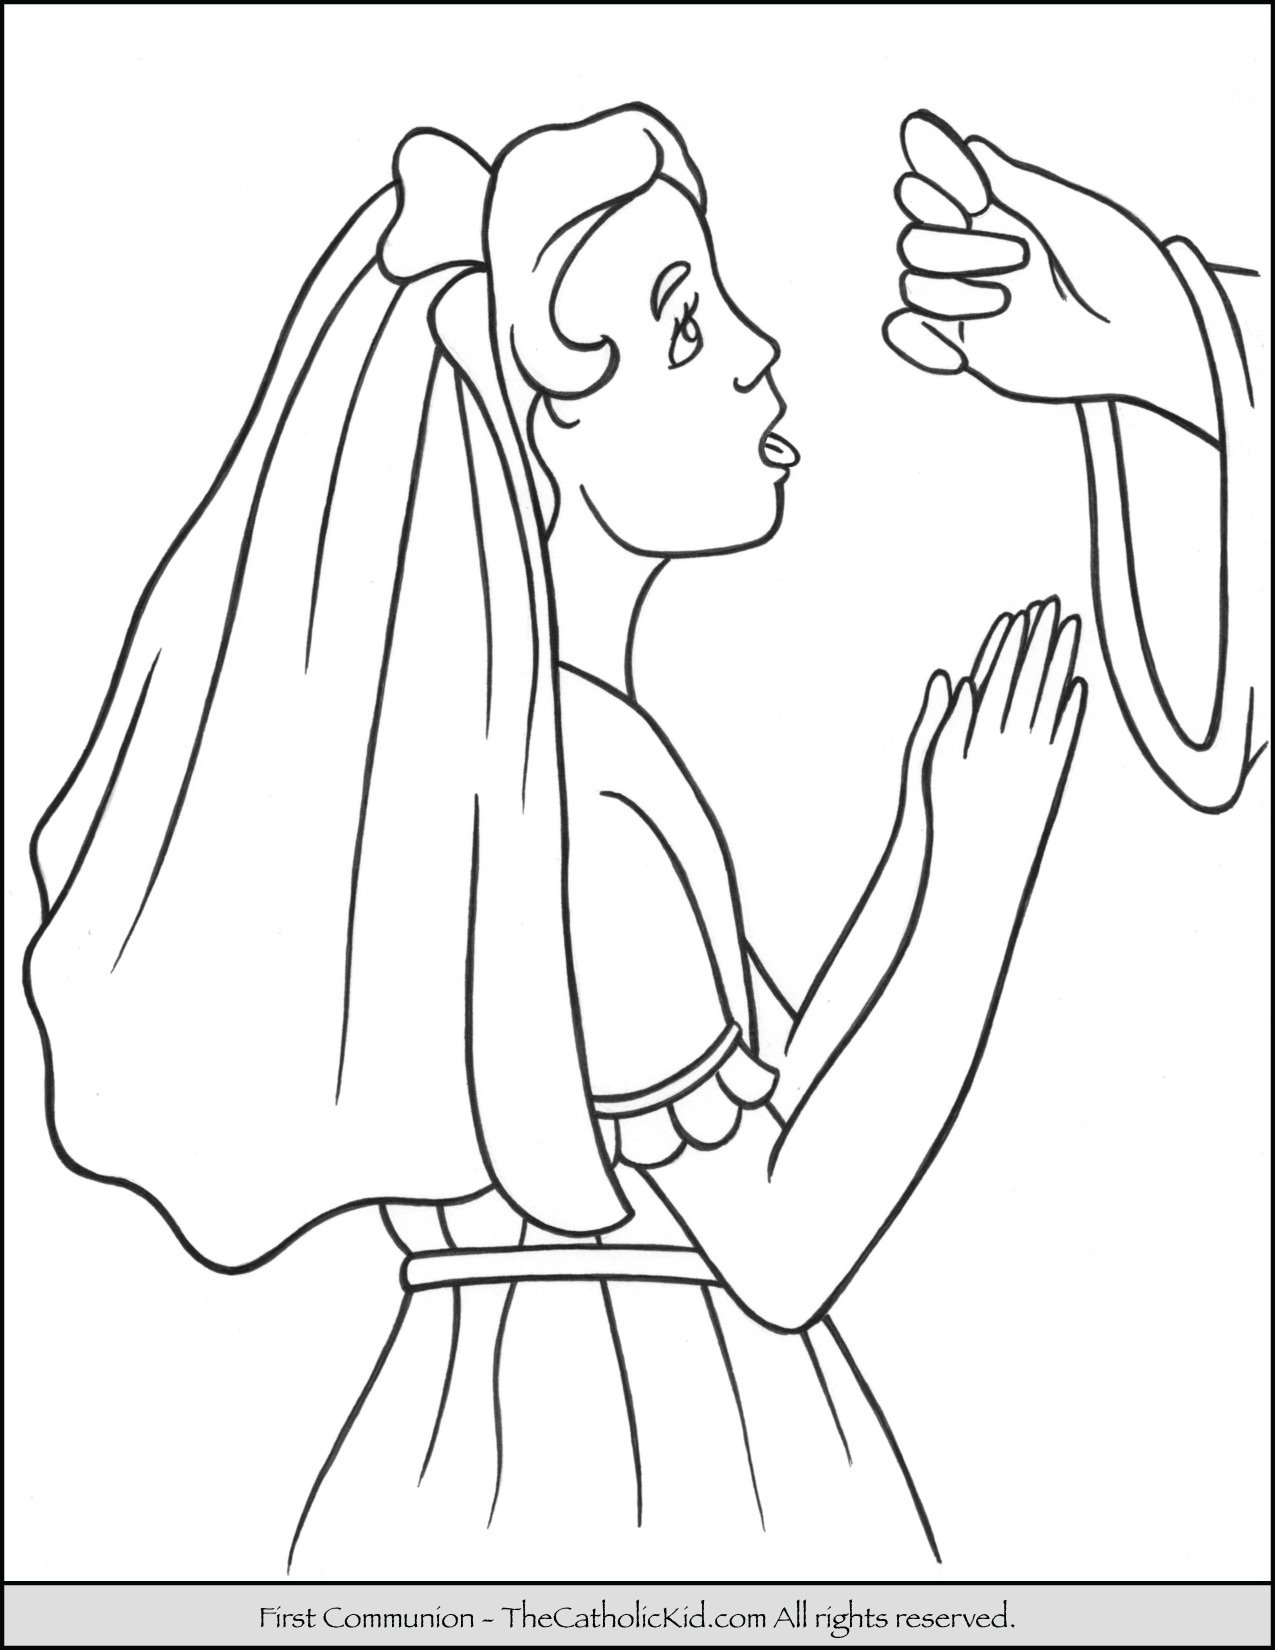 first communion girl coloring page 2 - Coloring Pages For Girl 2